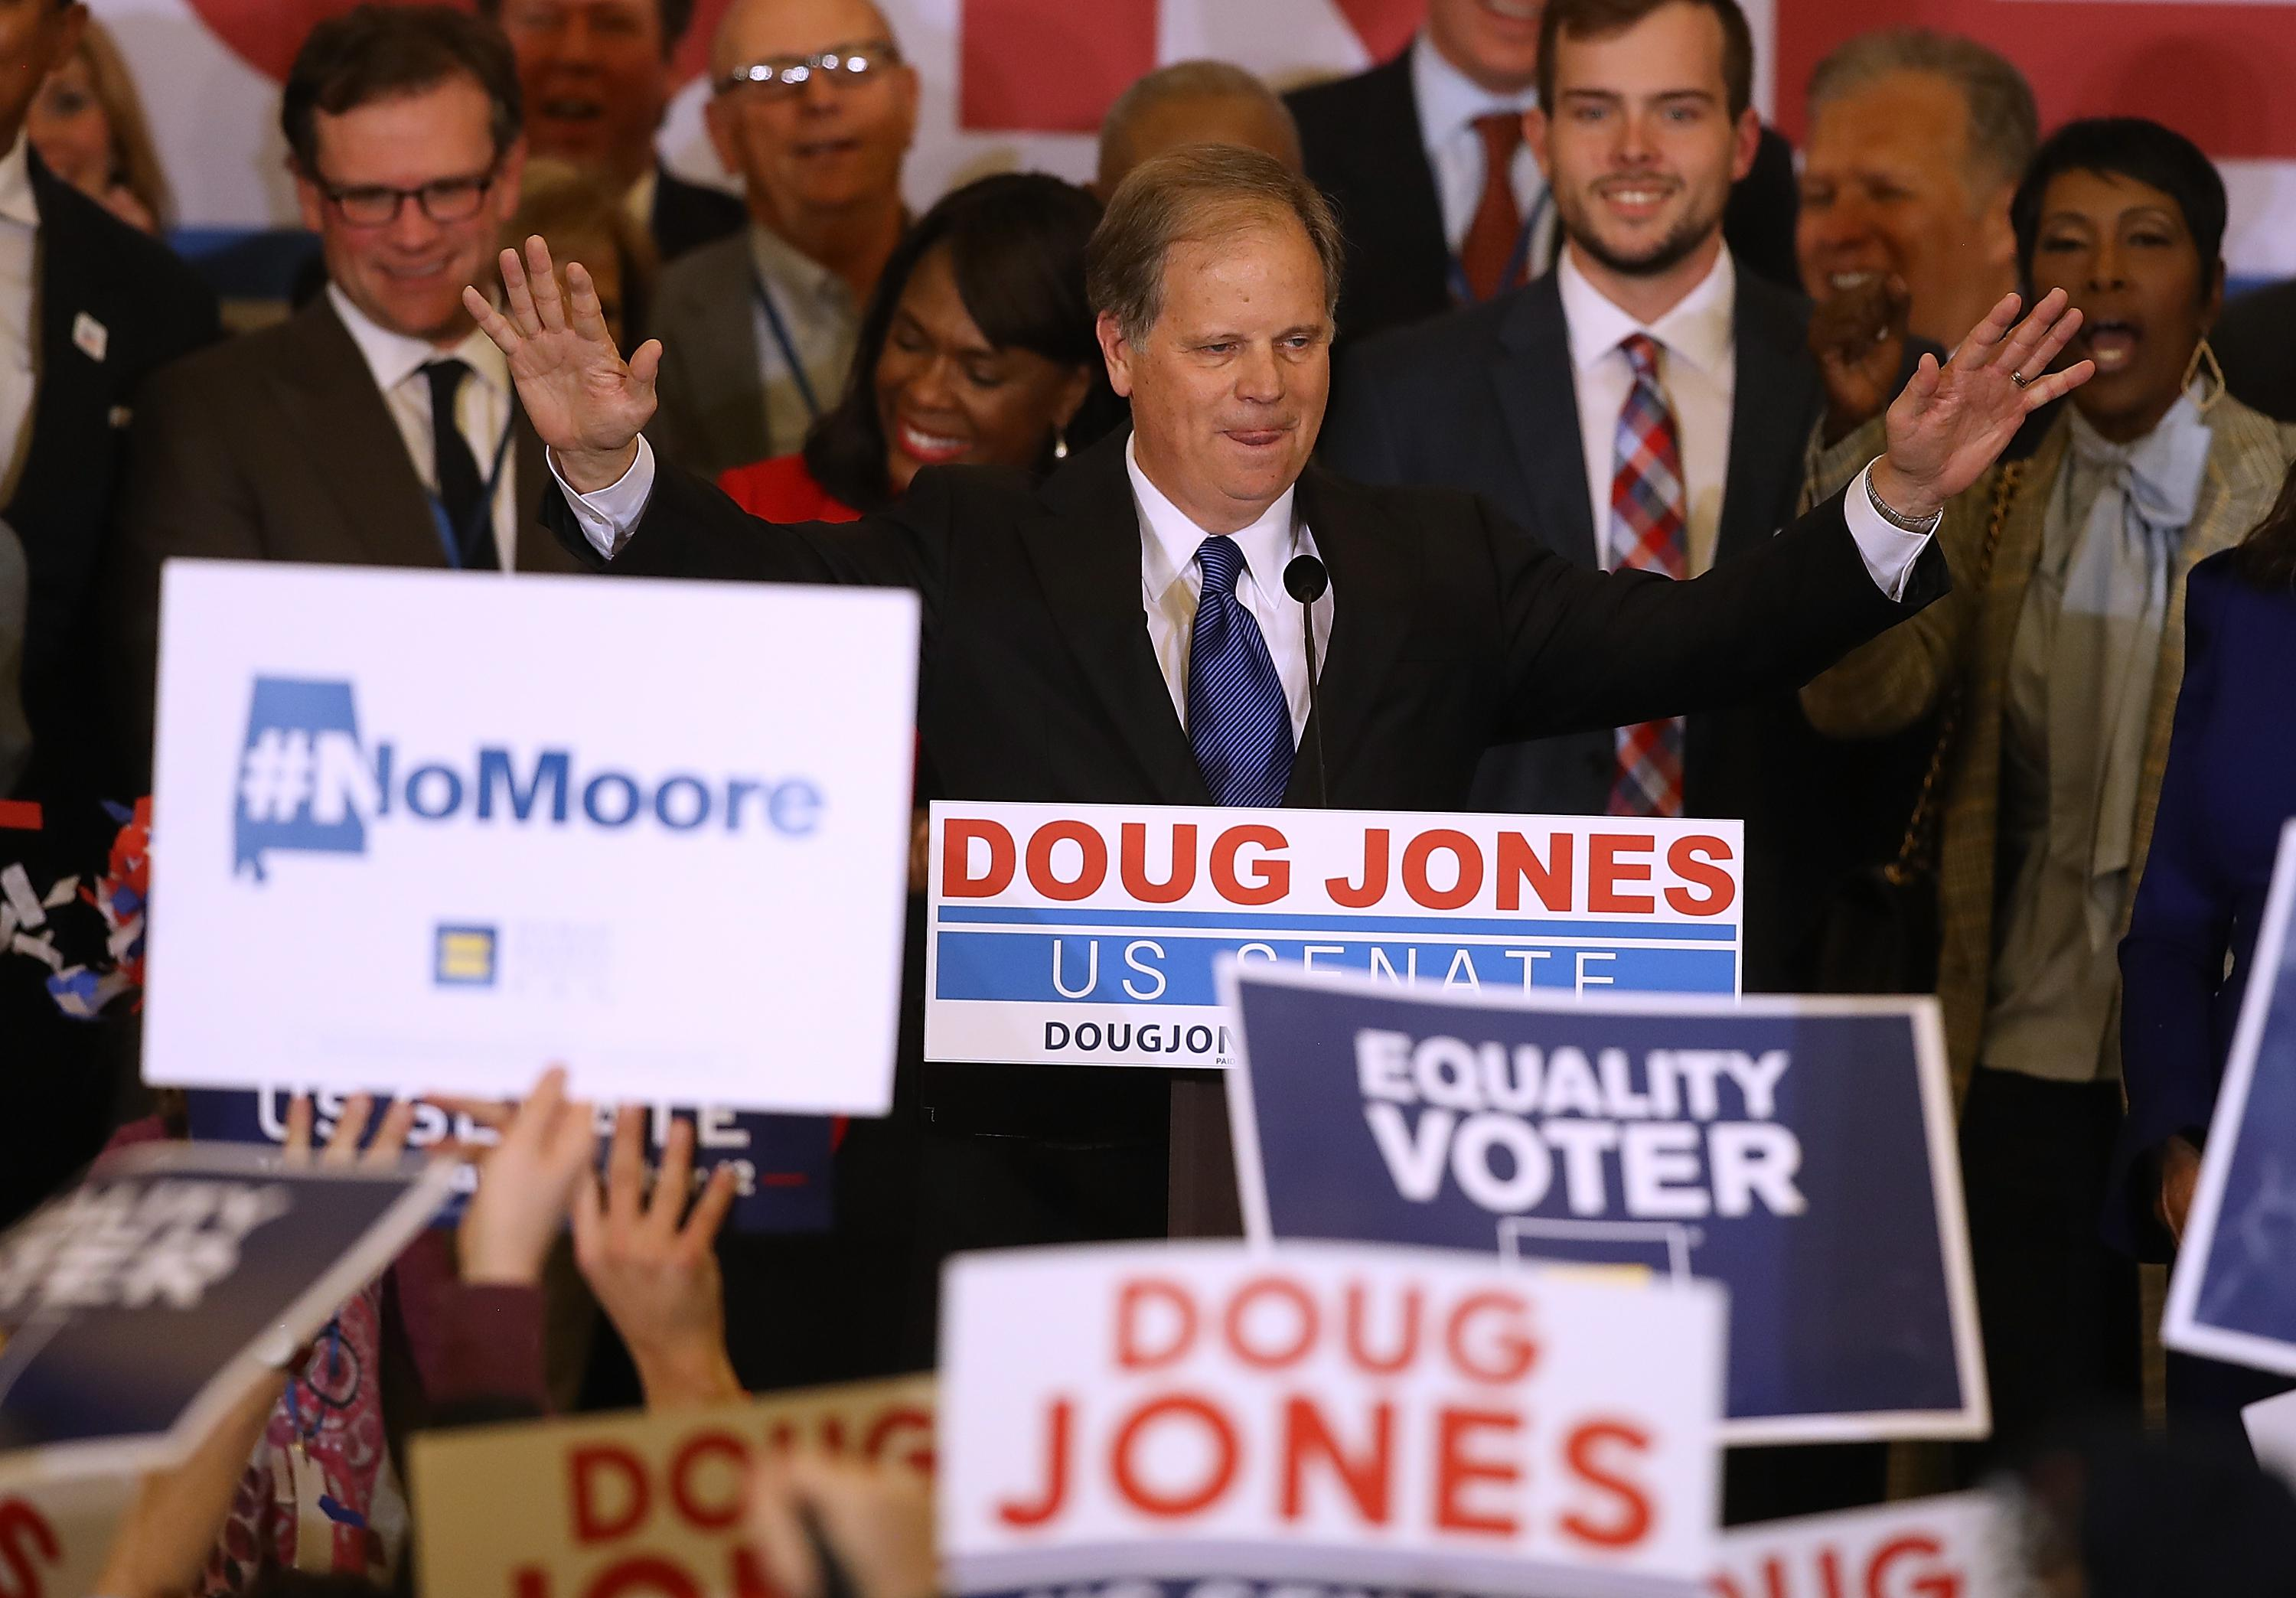 BIRMINGHAM, AL - DECEMBER 12:  Democratic U.S. Senator elect Doug Jones speaks to supporters during his election night gathering the Sheraton Hotel on December 12, 2017 in Birmingham, Alabama.  Doug Jones defeated his republican challenger Roy Moore to claim Alabama's U.S. Senate seat that was vacated by attorney general Jeff Sessions. (Photo by Justin Sullivan/Getty Images)